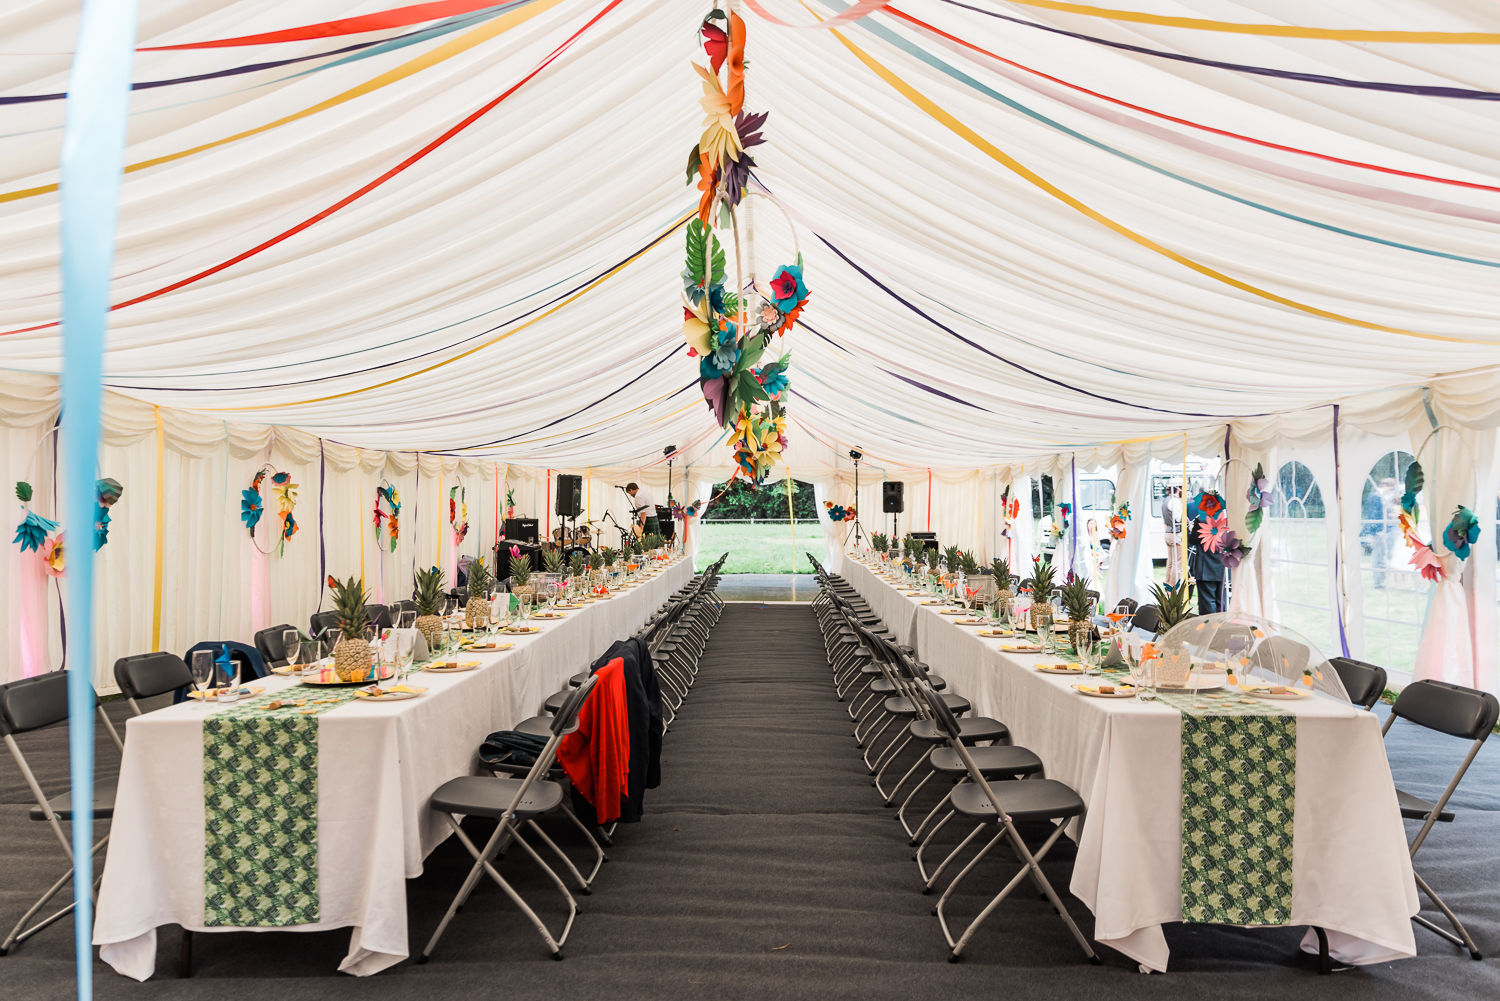 Wedding table setting inside a marquee tent in Cambridgeshire